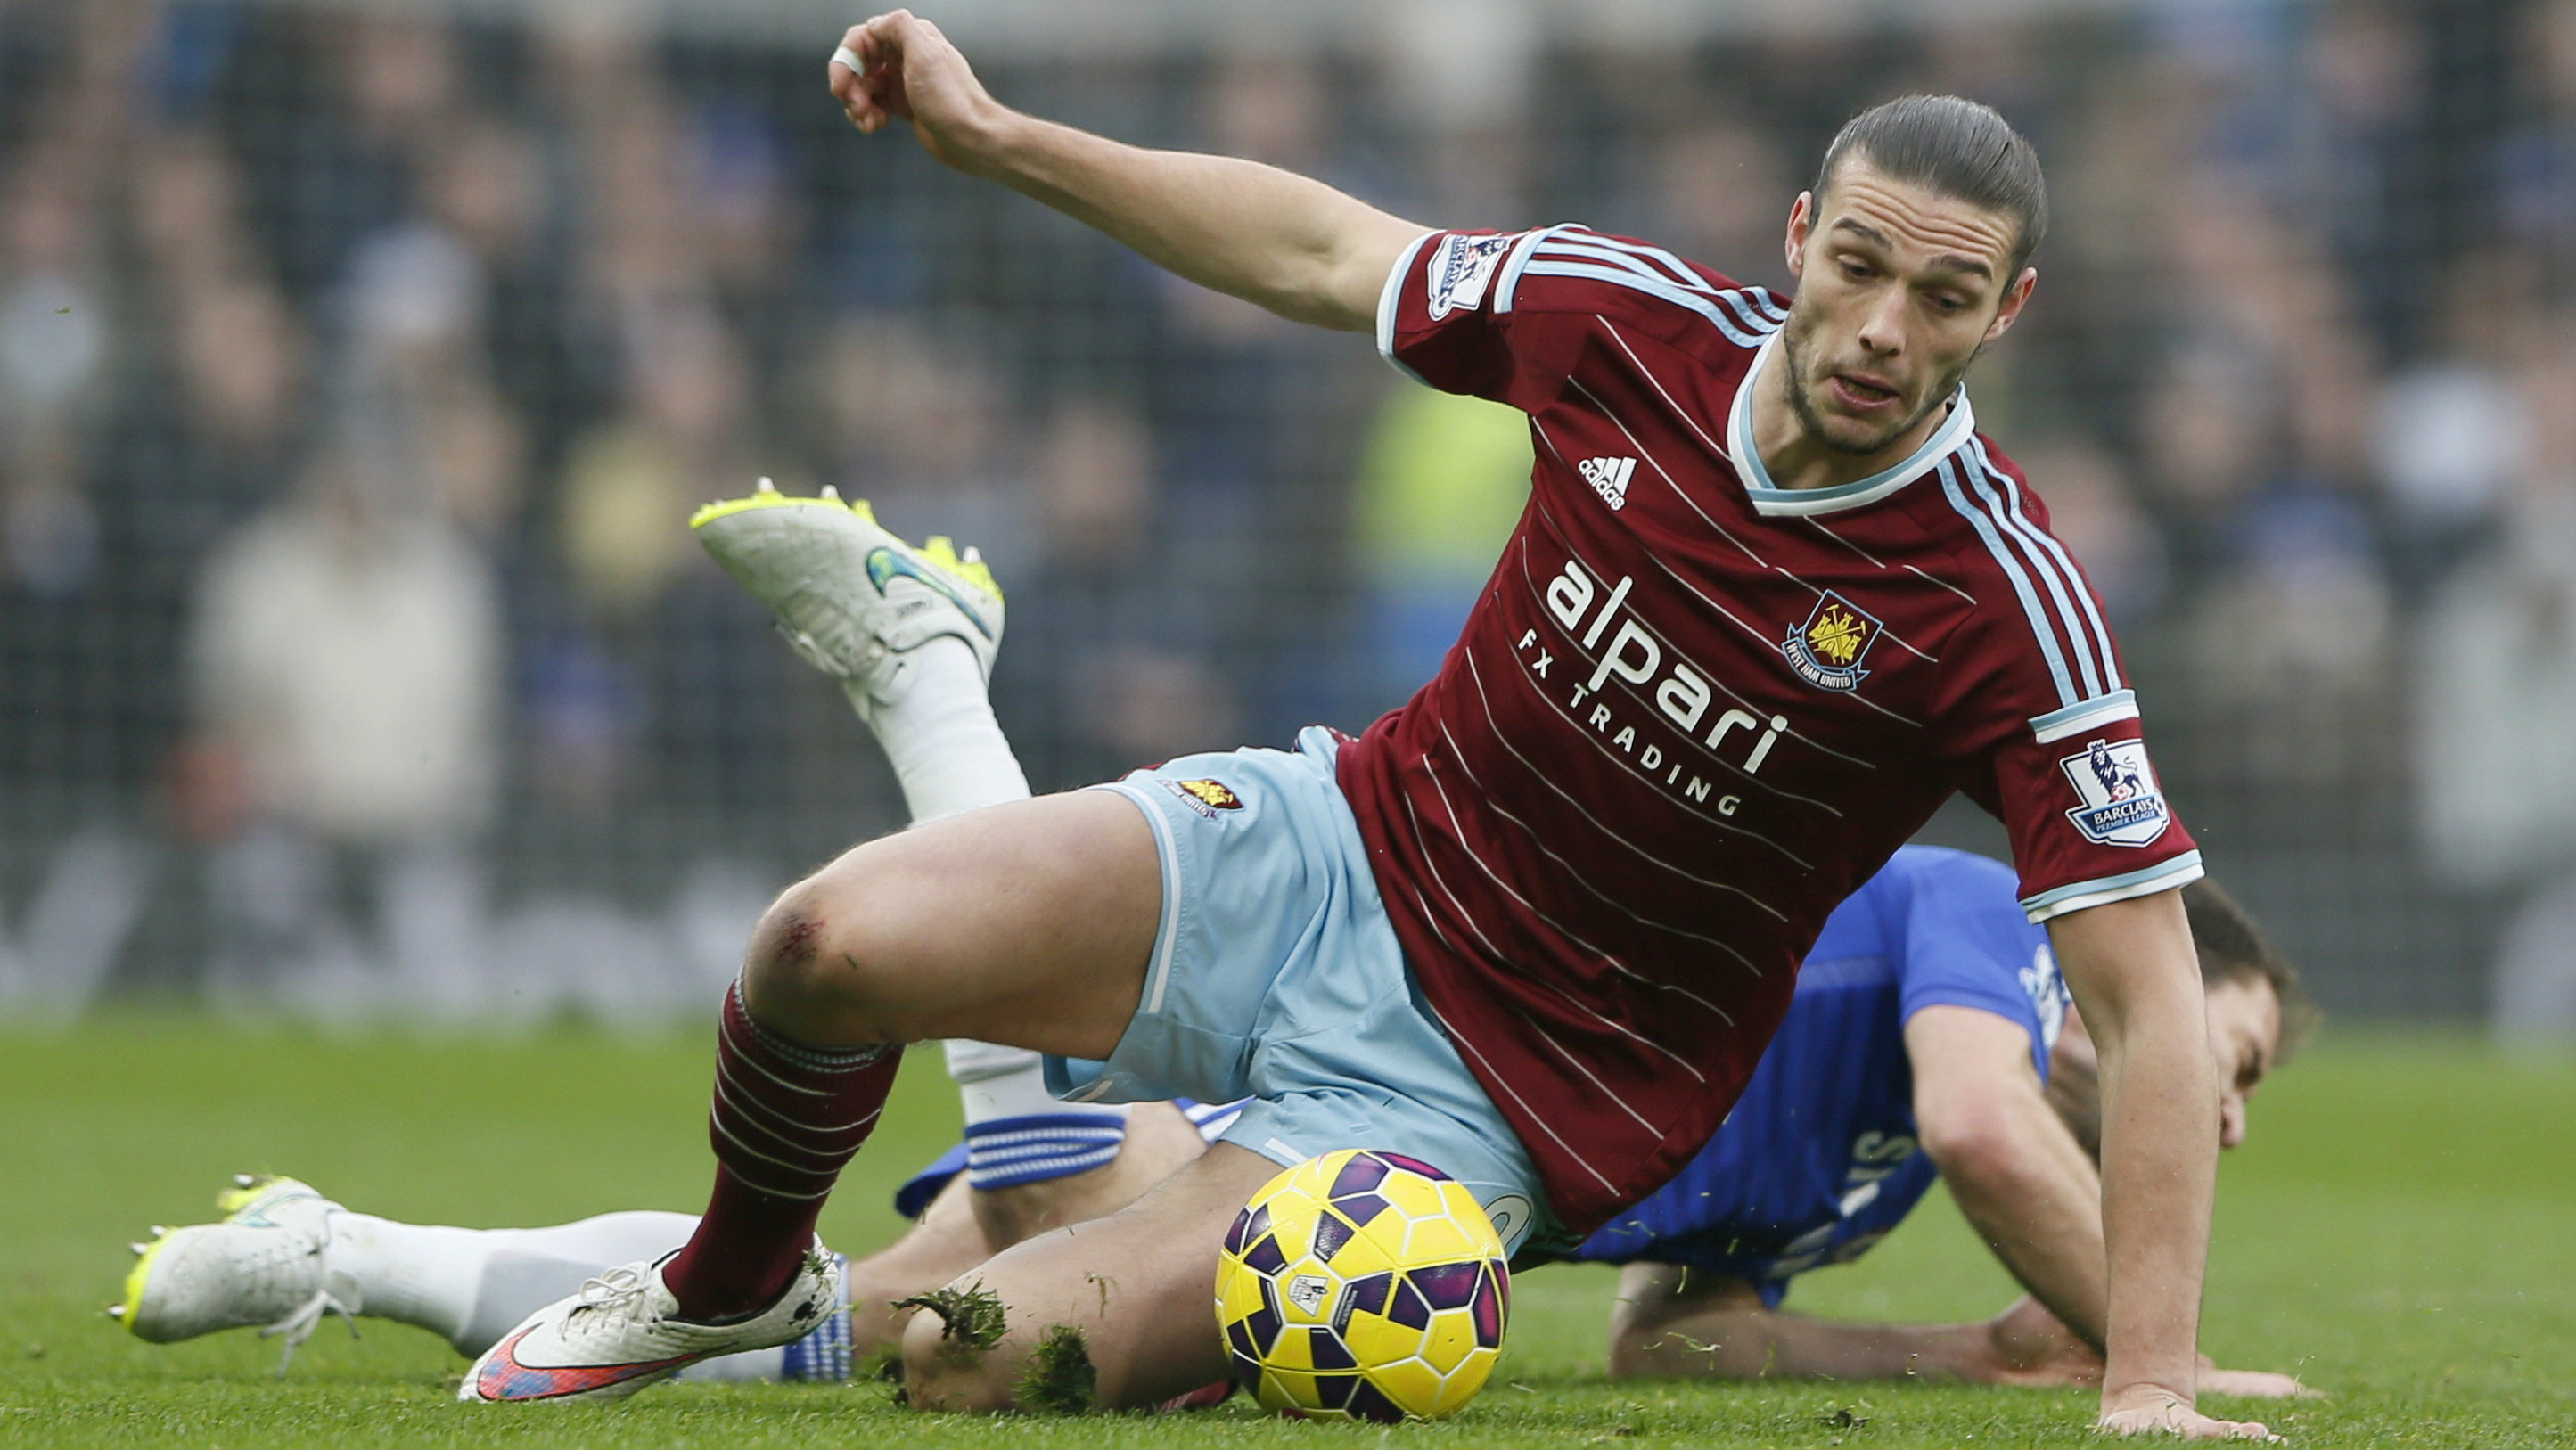 Chelsea's Branislav Ivanovic  is challenged by West Ham United's Andy Carroll during their English Premier League soccer match at Stamford Bridge in London, December 26, 2014.